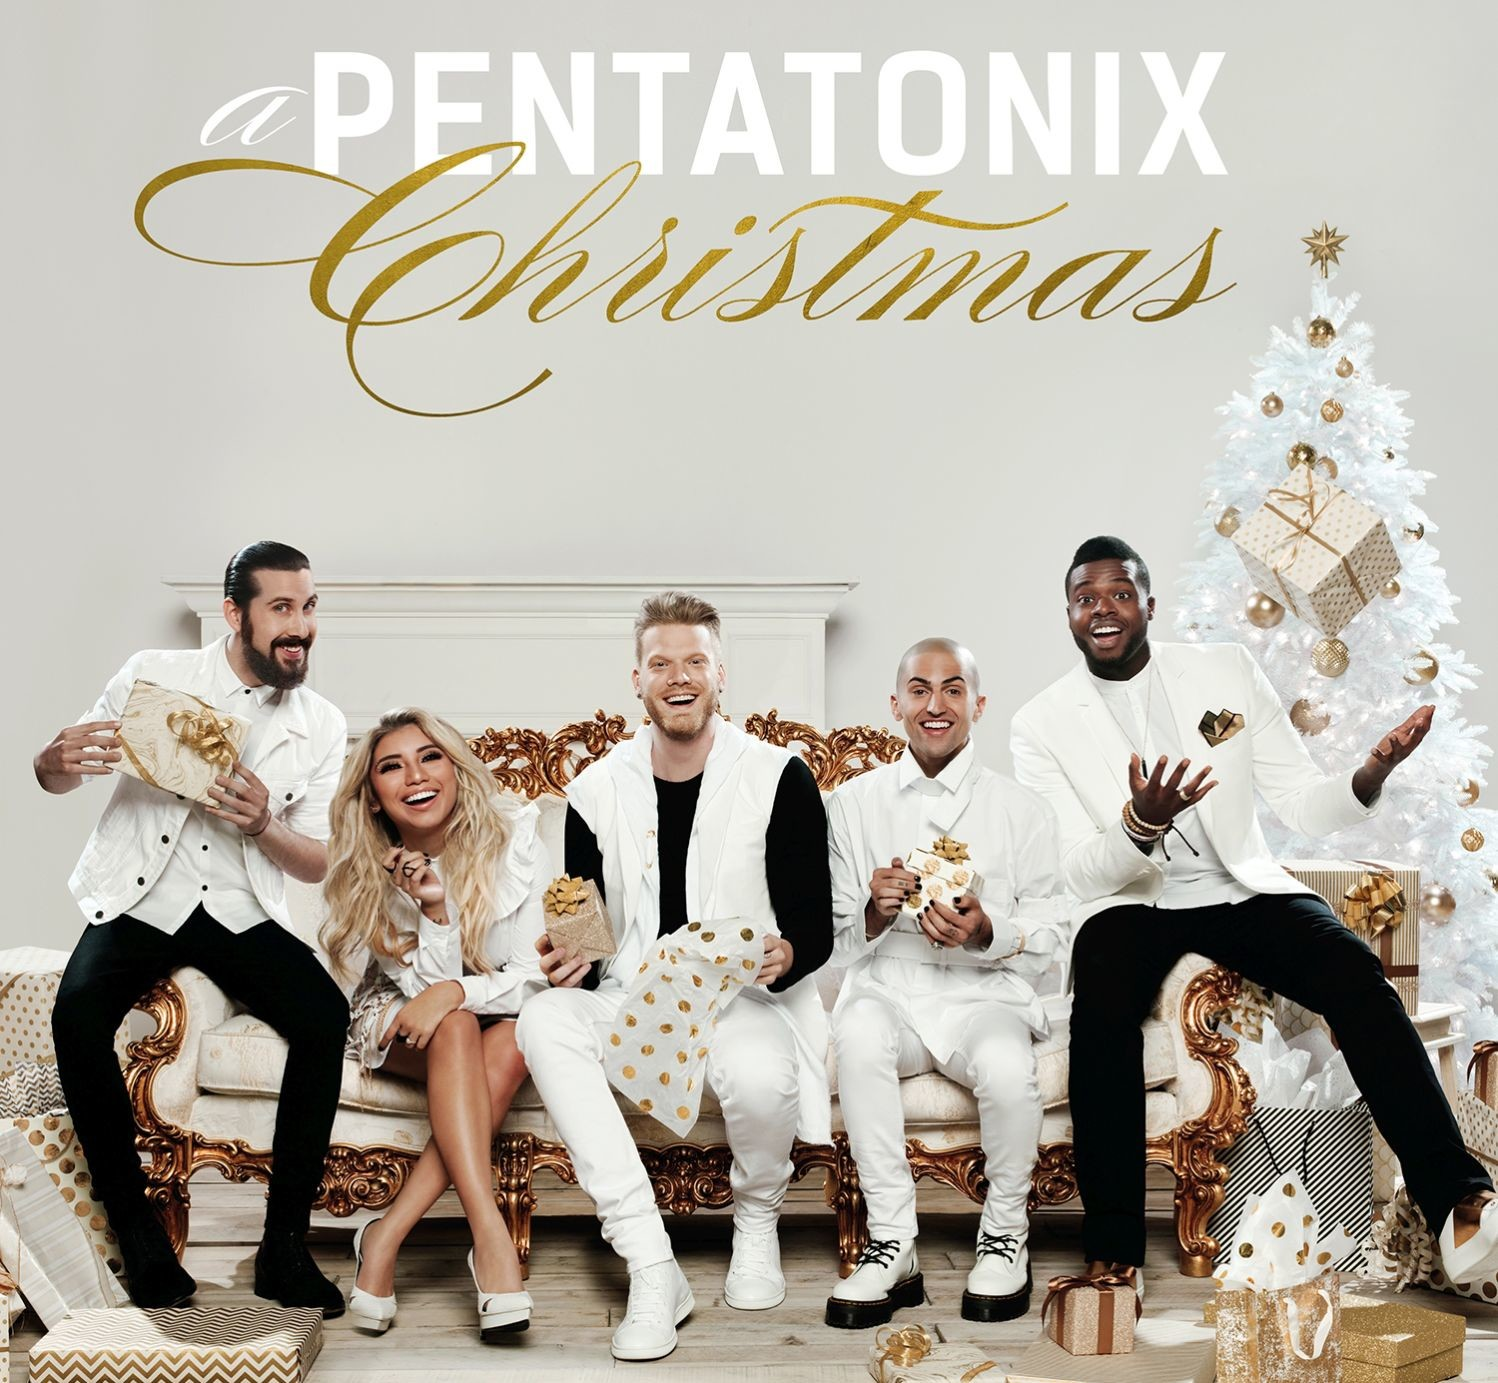 A Pentatonix Christmas\' delivers holiday harmony   Hill Country News